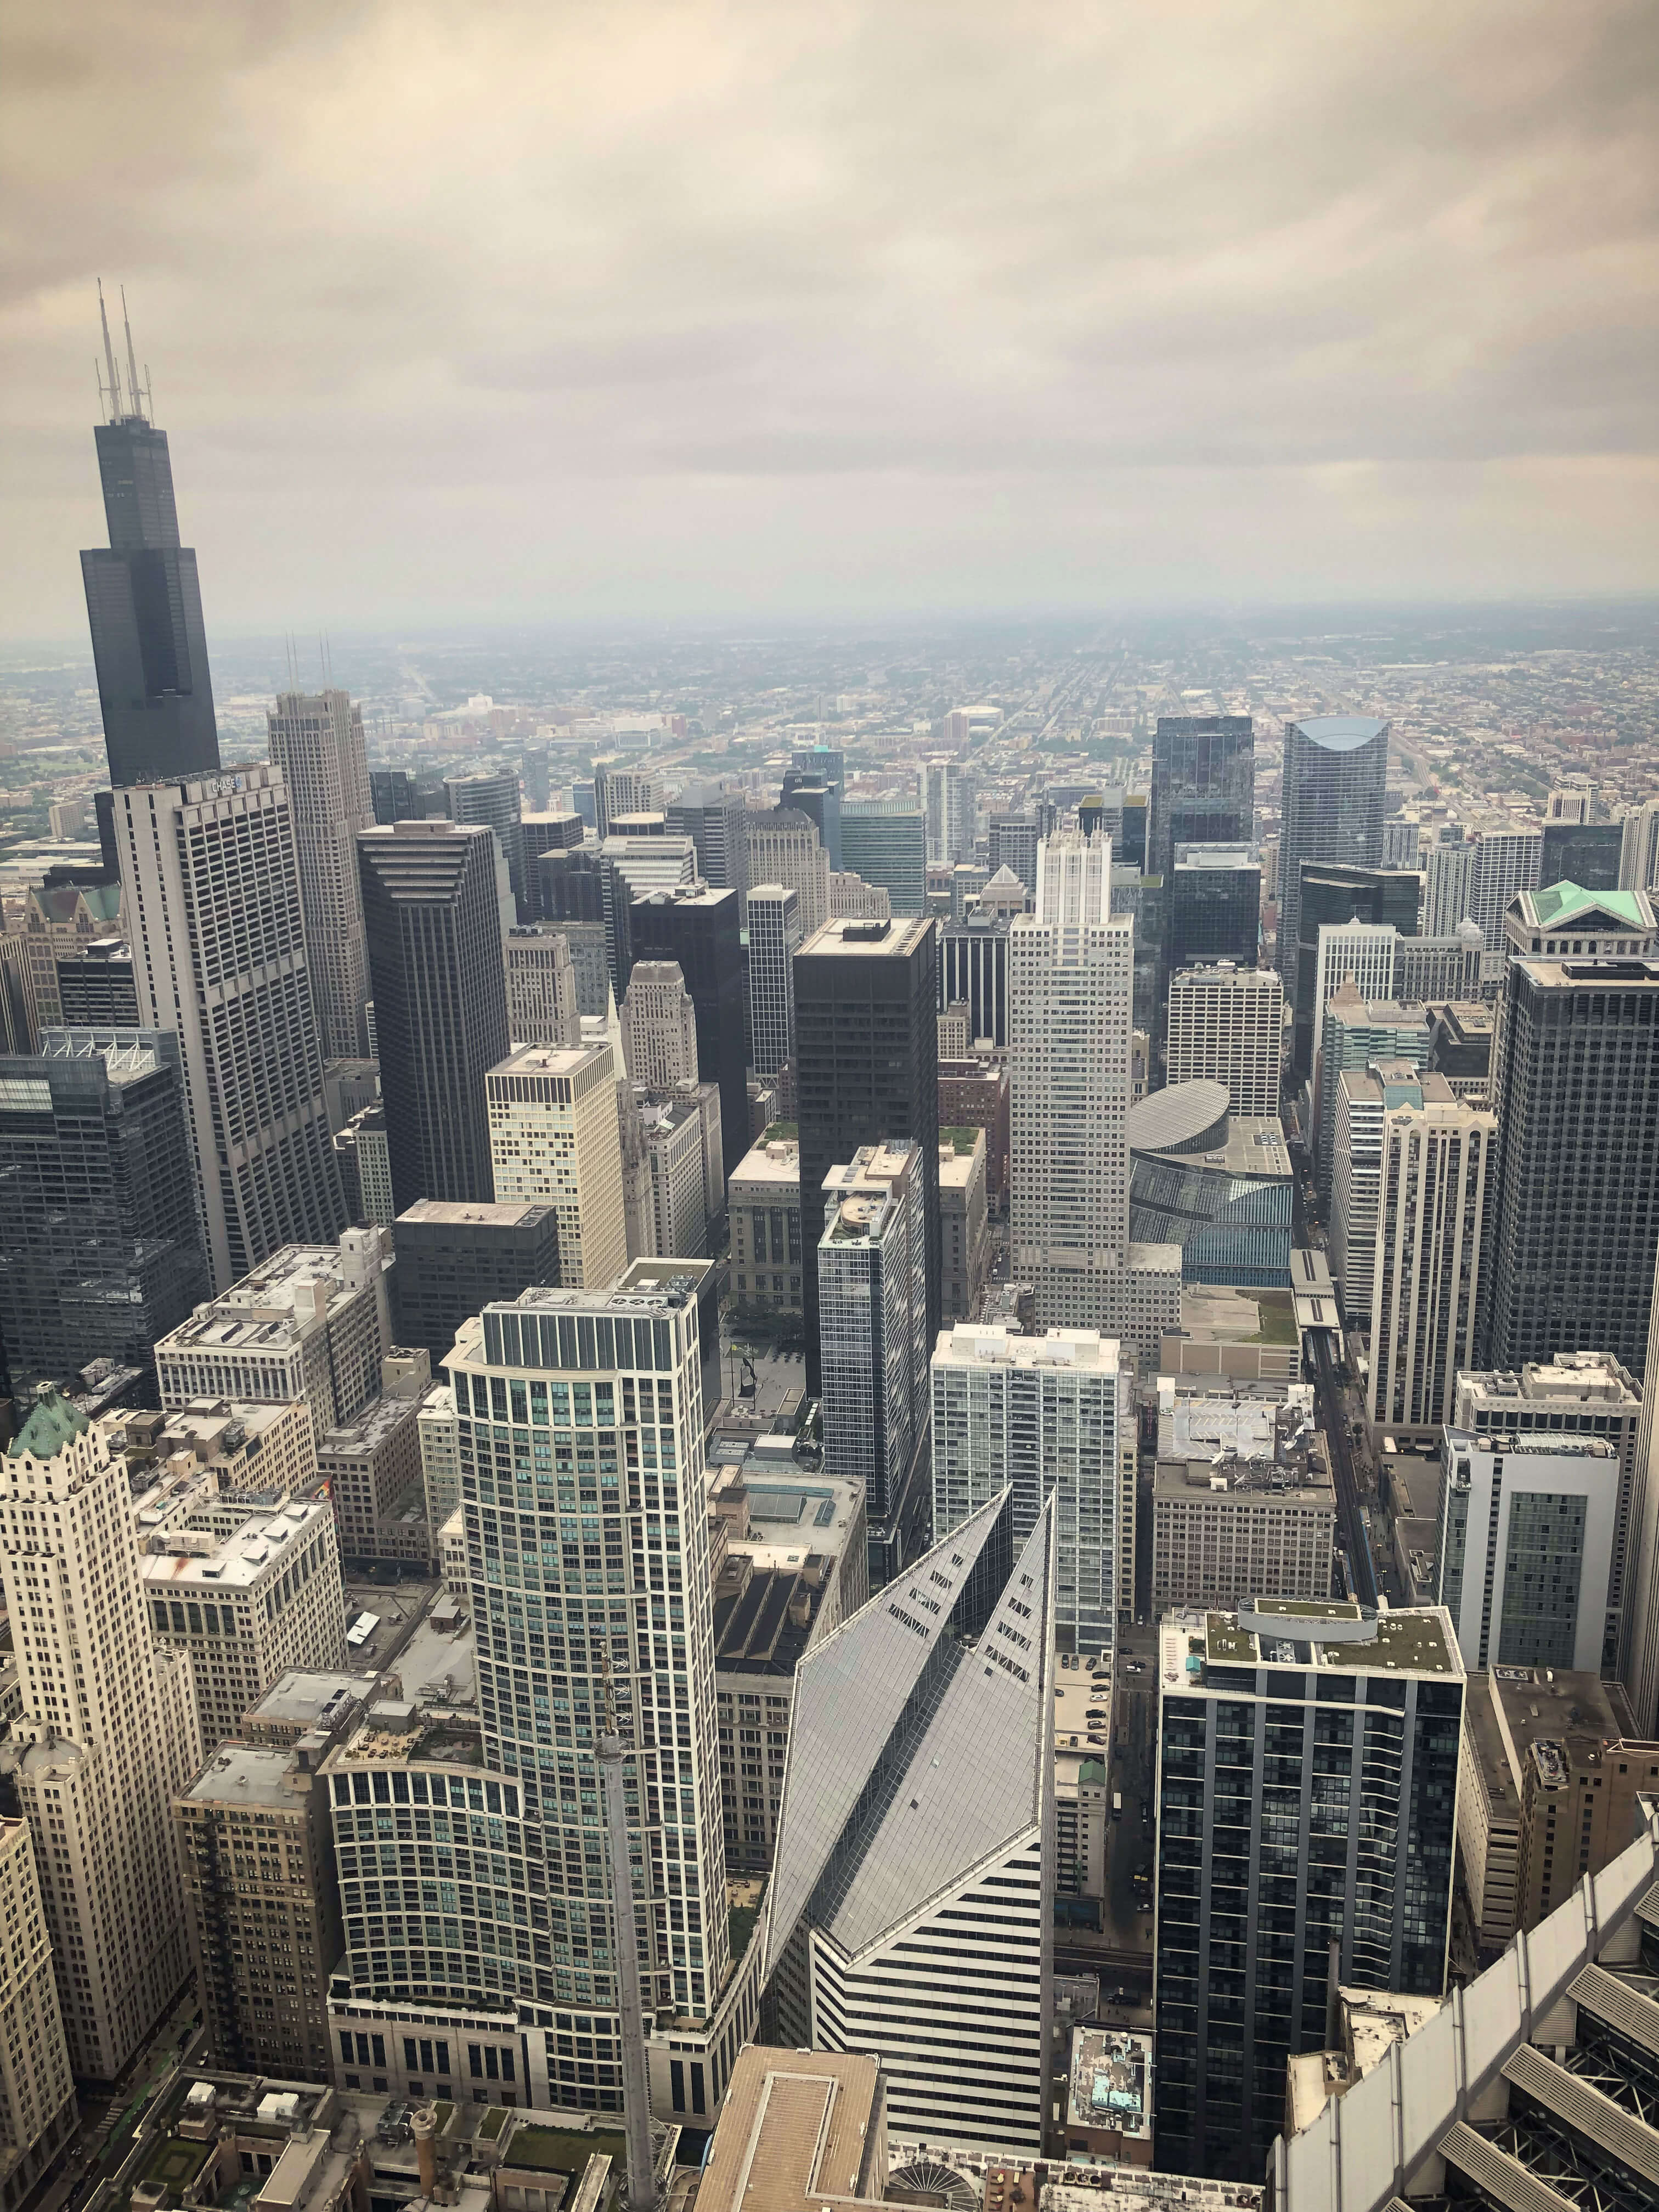 Downtown Chicago as seen from the 86th floor of a building.